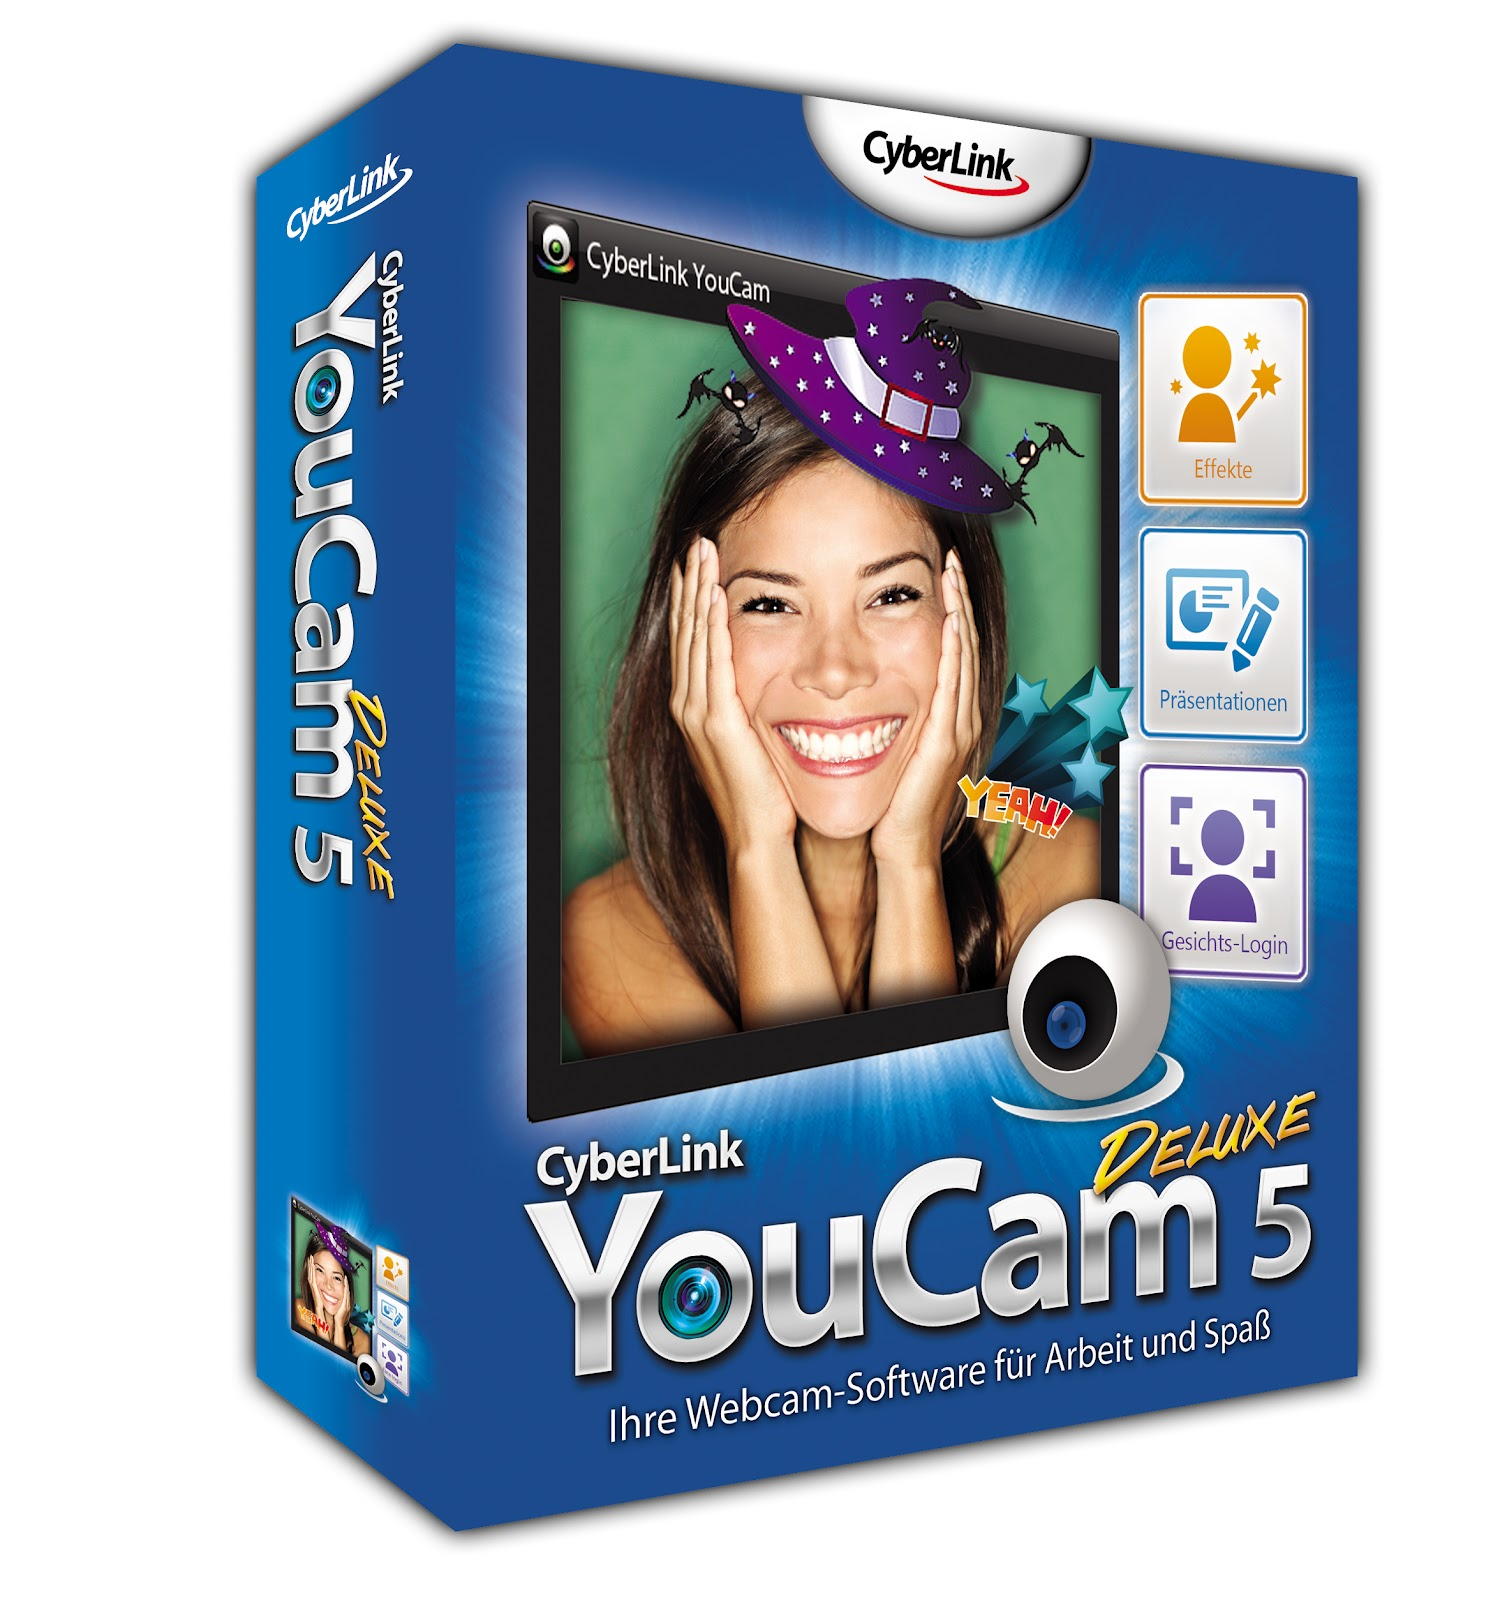 Download CyberLink YouCam